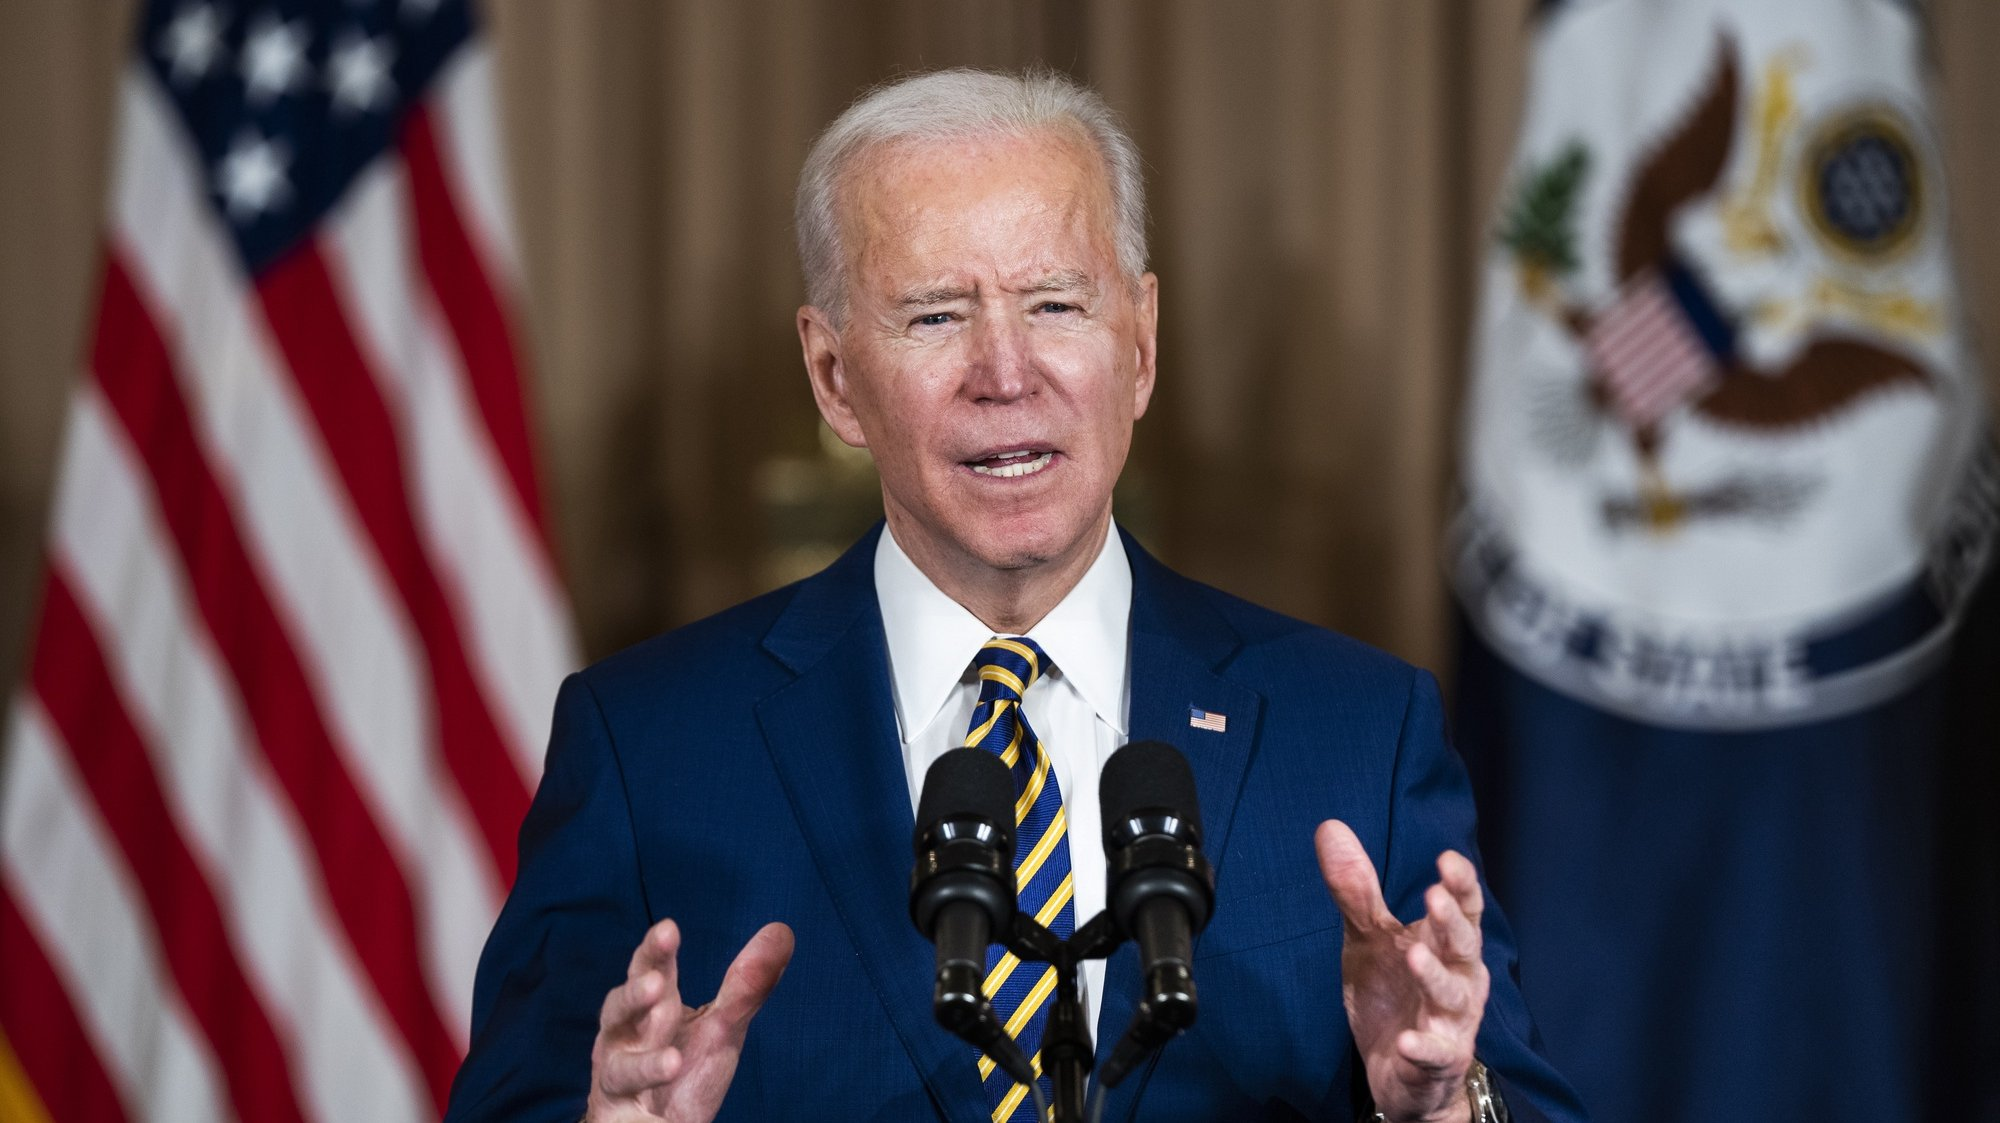 epa08987639 US President Joe Biden makes a foreign policy speech at the State Department in Washington, DC, USA, 04 February 2021. Biden announced that he is ending US support for the Saudi's offensive operations in Yemen.  EPA/JIM LO SCALZO